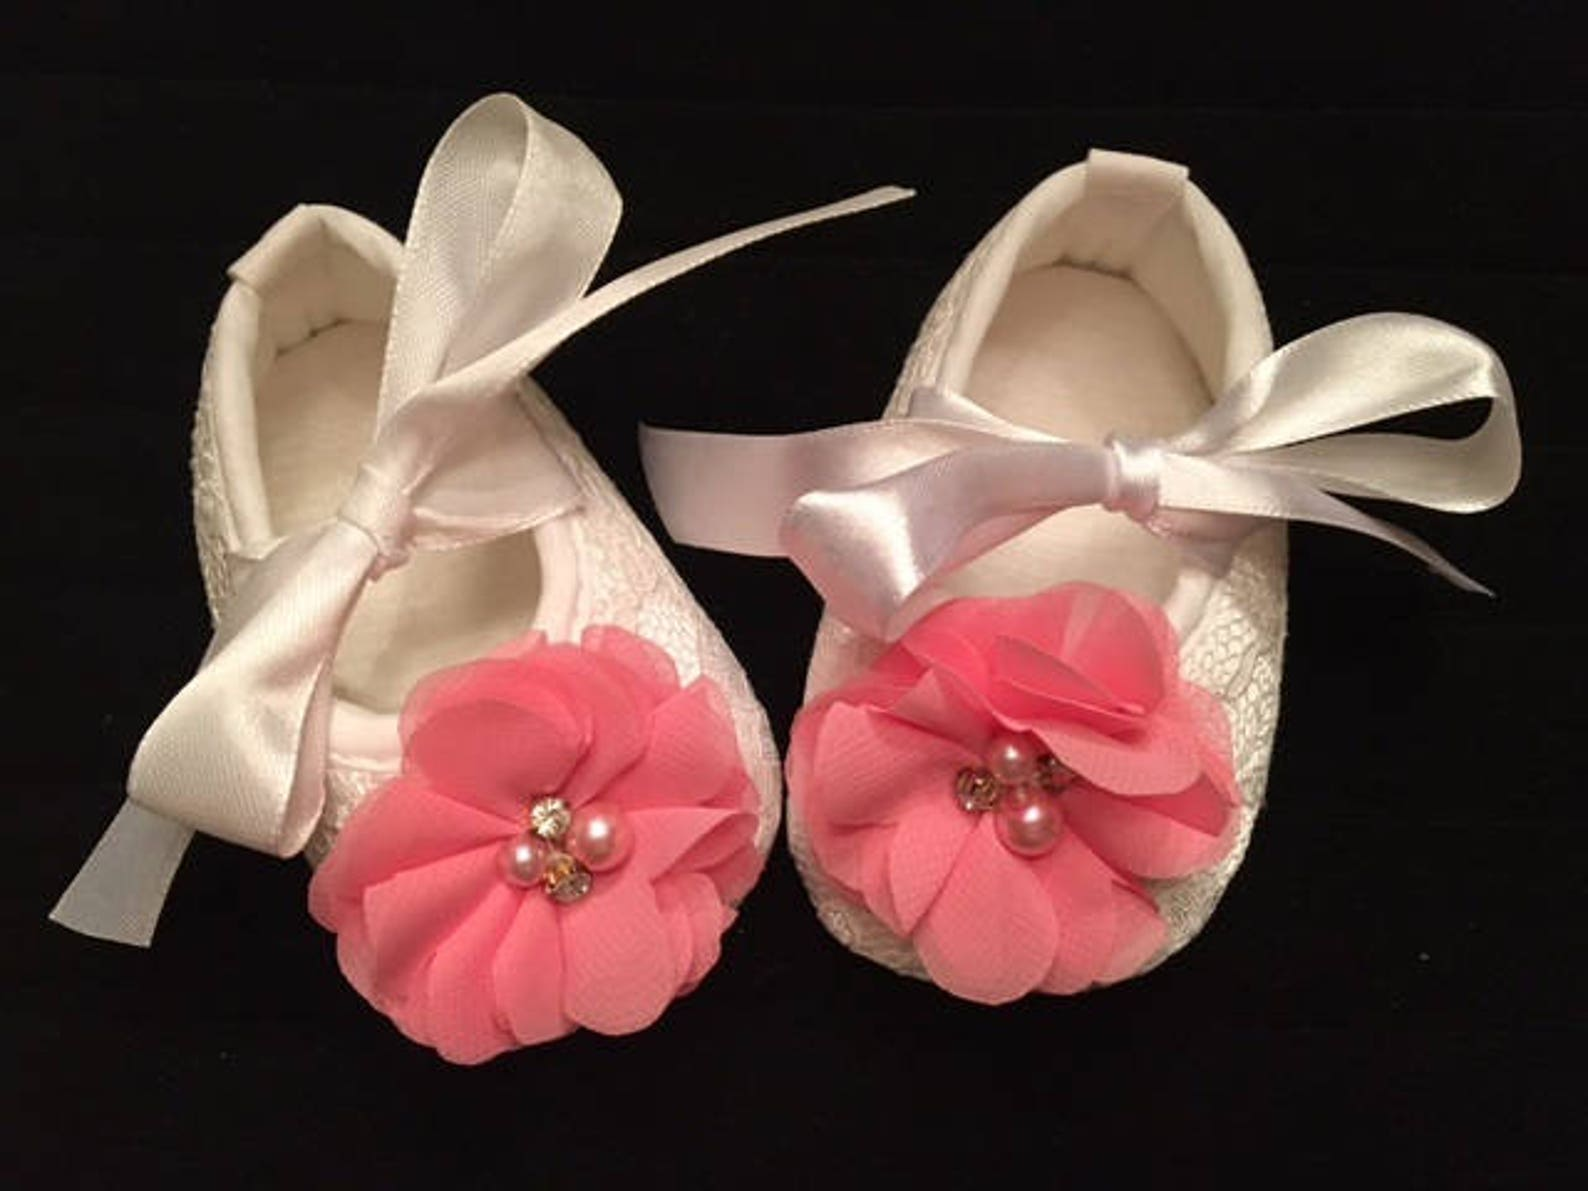 white lace baby shoes with pink flower accent - baby flower girl shoes - baby dress christmas shoes - baby ballet slippers